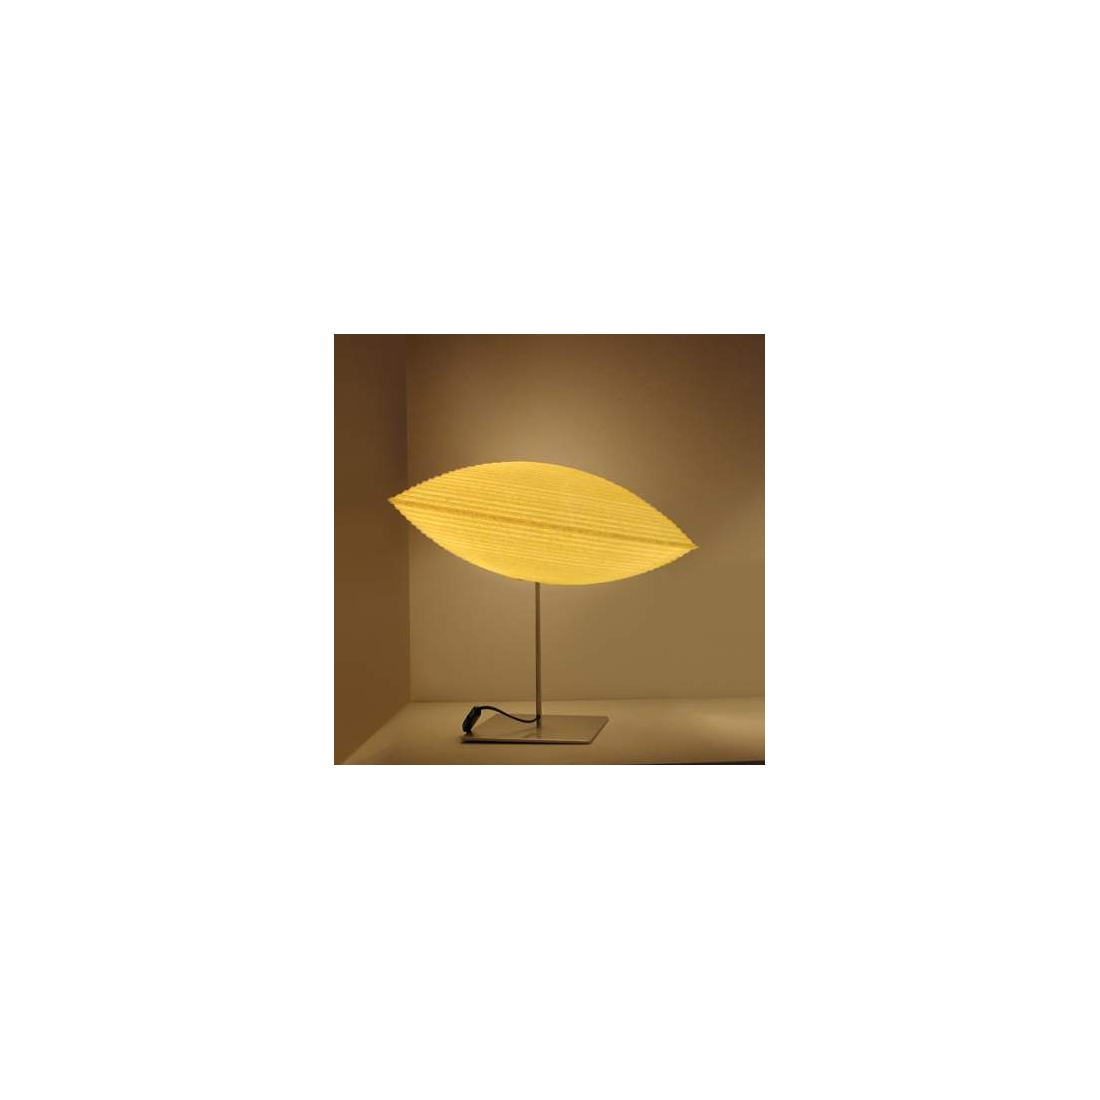 Lampe de table slide morea 18 cm lampes poser design for Lampe de table rona